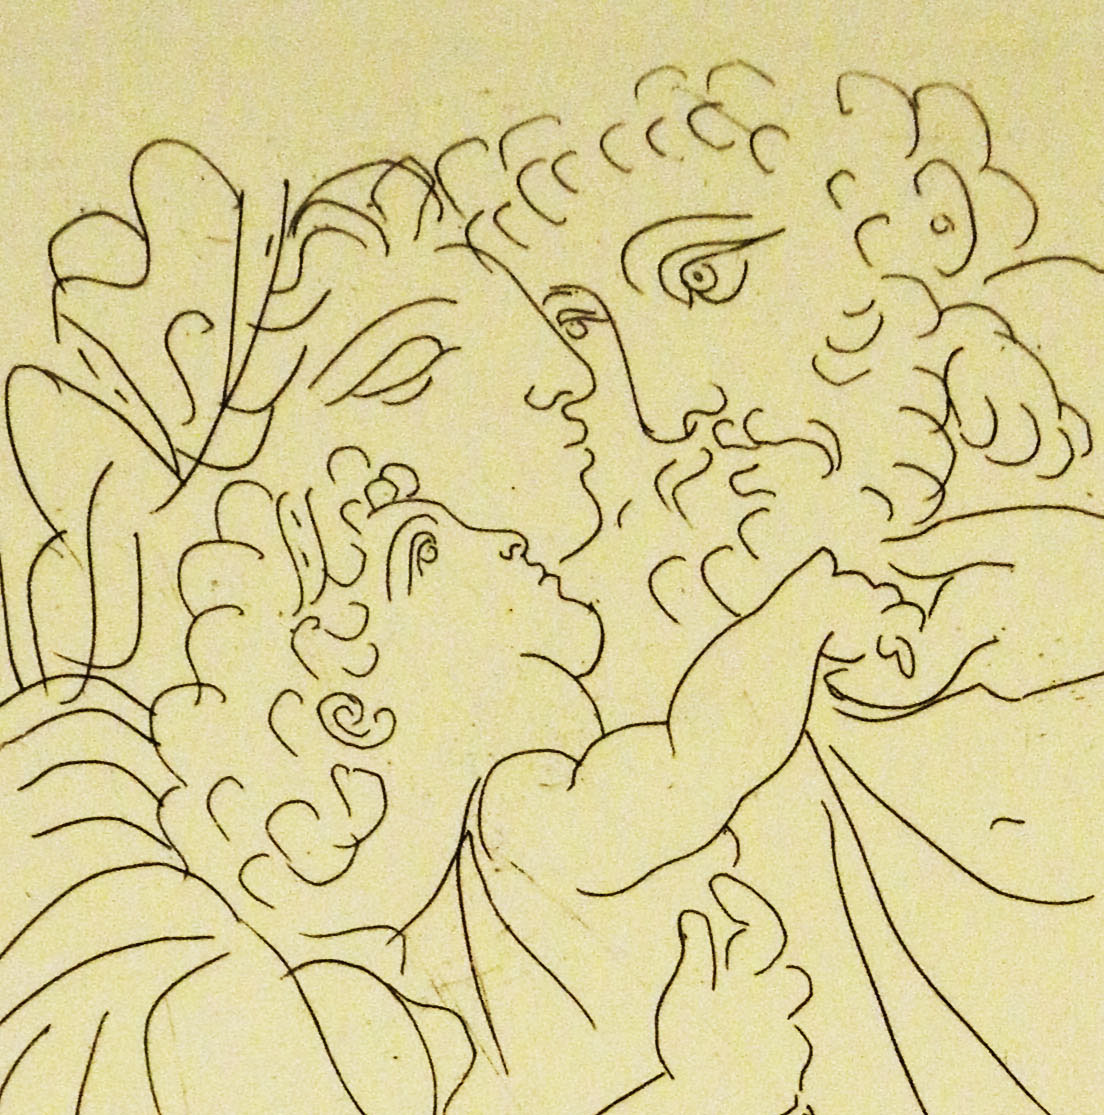 Detail of an etching from Six Signed Proofs of Original Etchings of Pablo Picasso: Made to illustrate an edition of Aristophanes' Lysistrata, 1934. (ND553 .P5 1934. Gift of T. Catesby Jones. Photograph by Donna Stapley.)